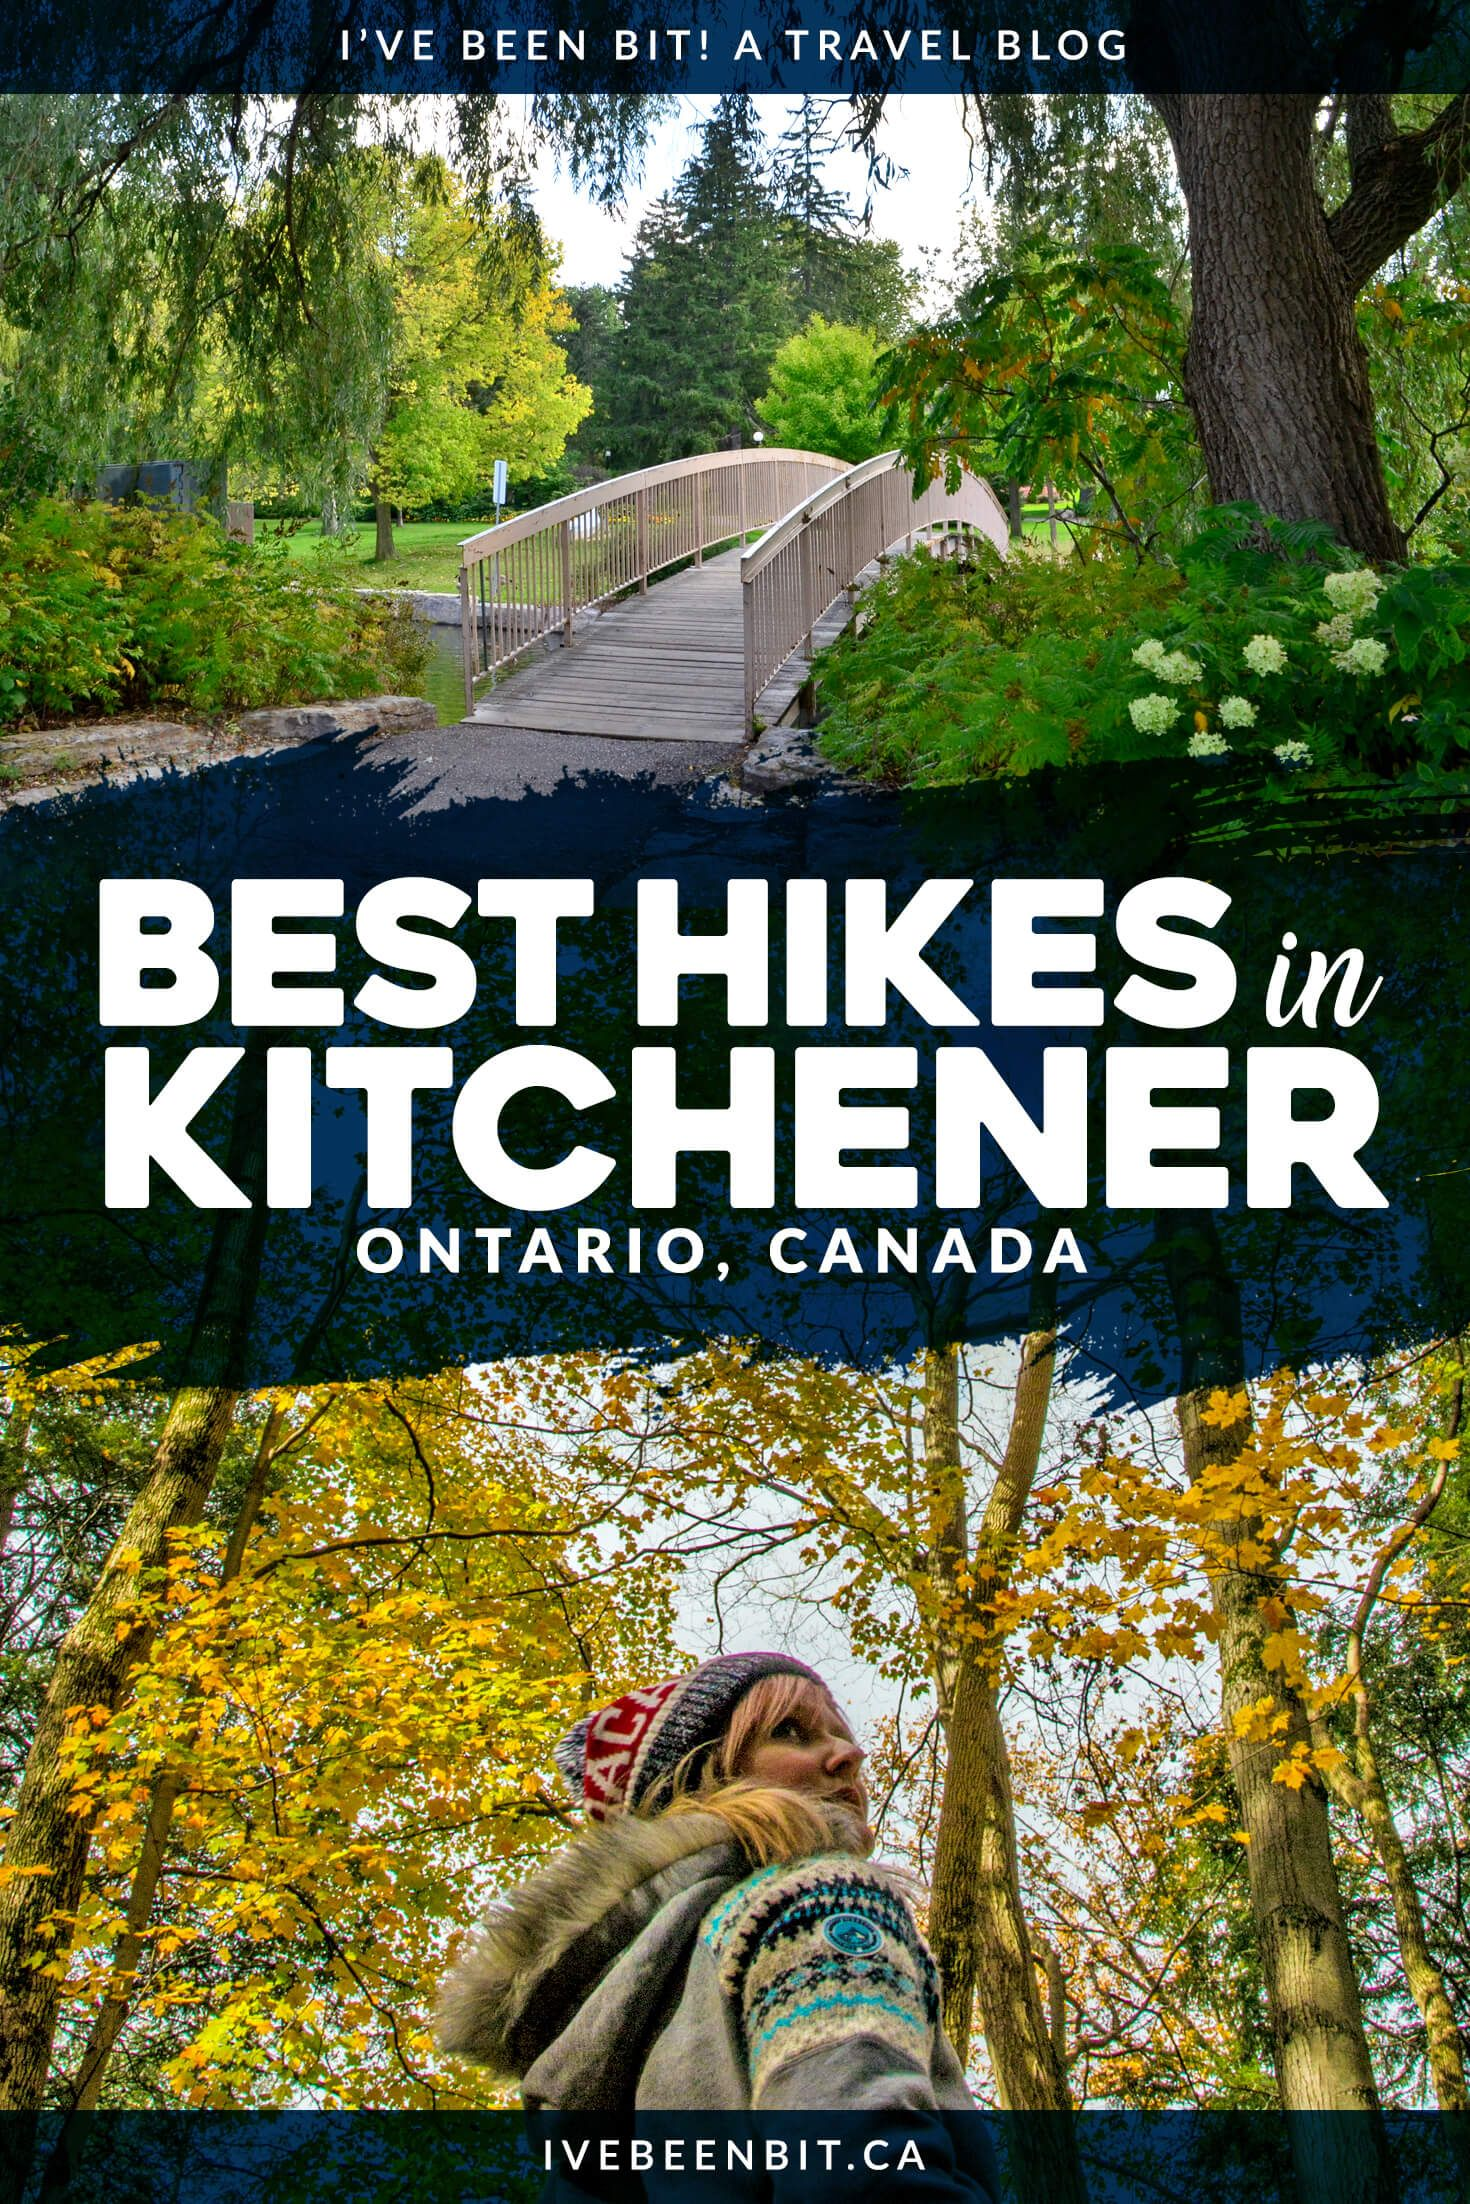 Charming Must Do Kitchener Trails For Locals And Visitors Alike